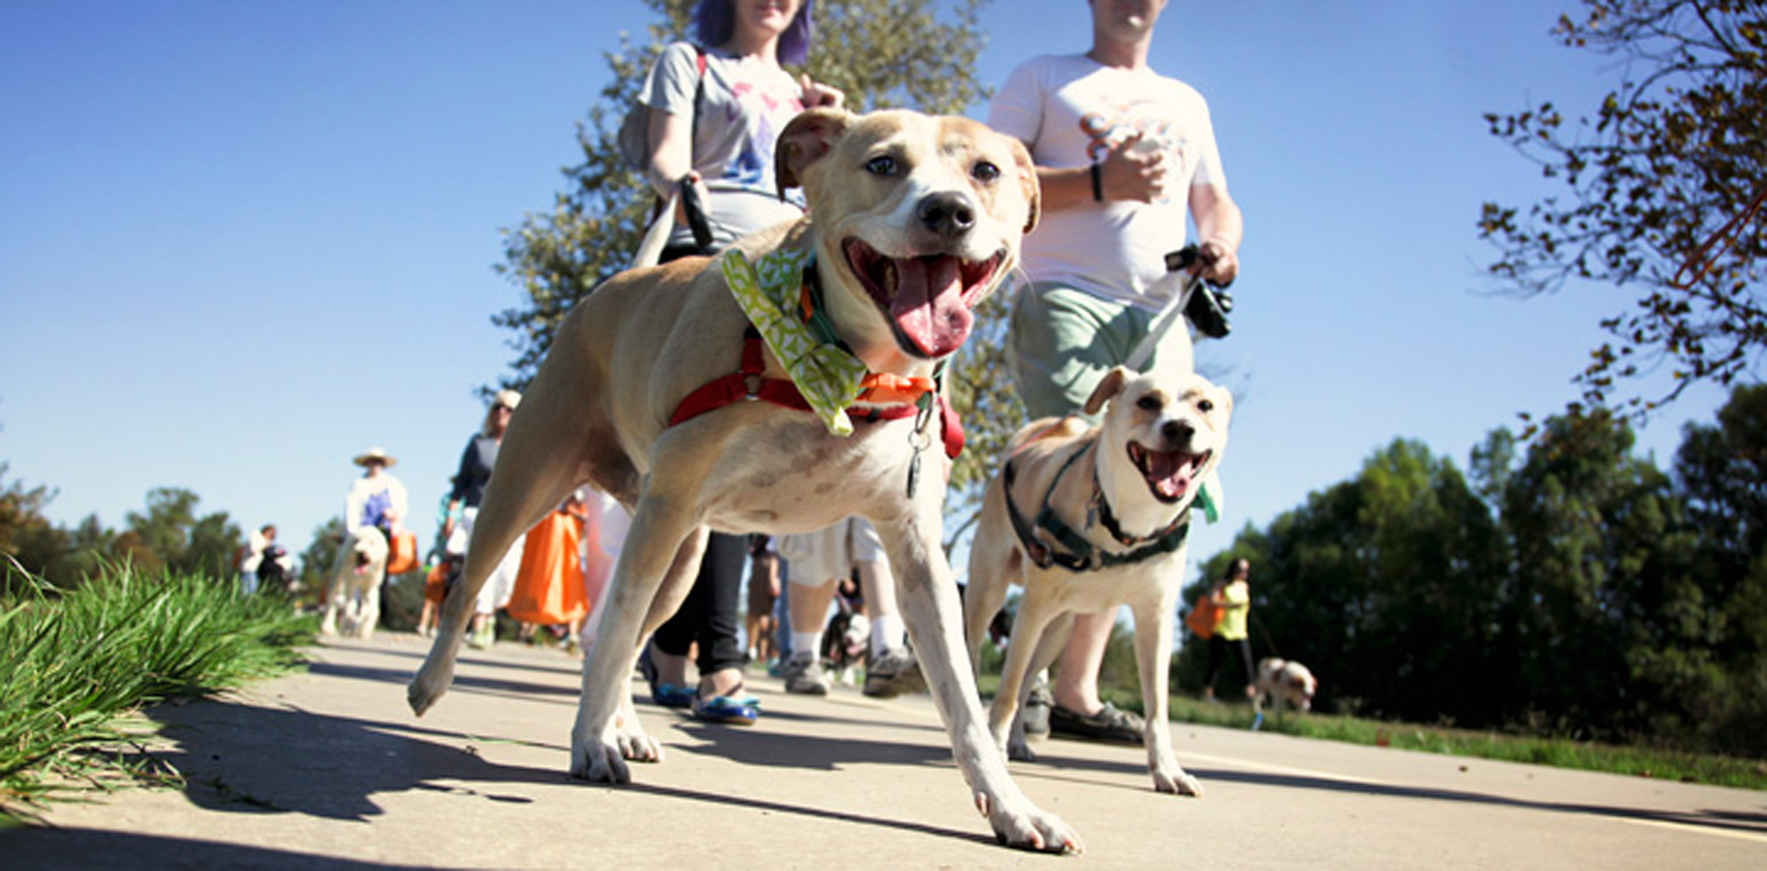 Paws for a Cause Dog Walk image